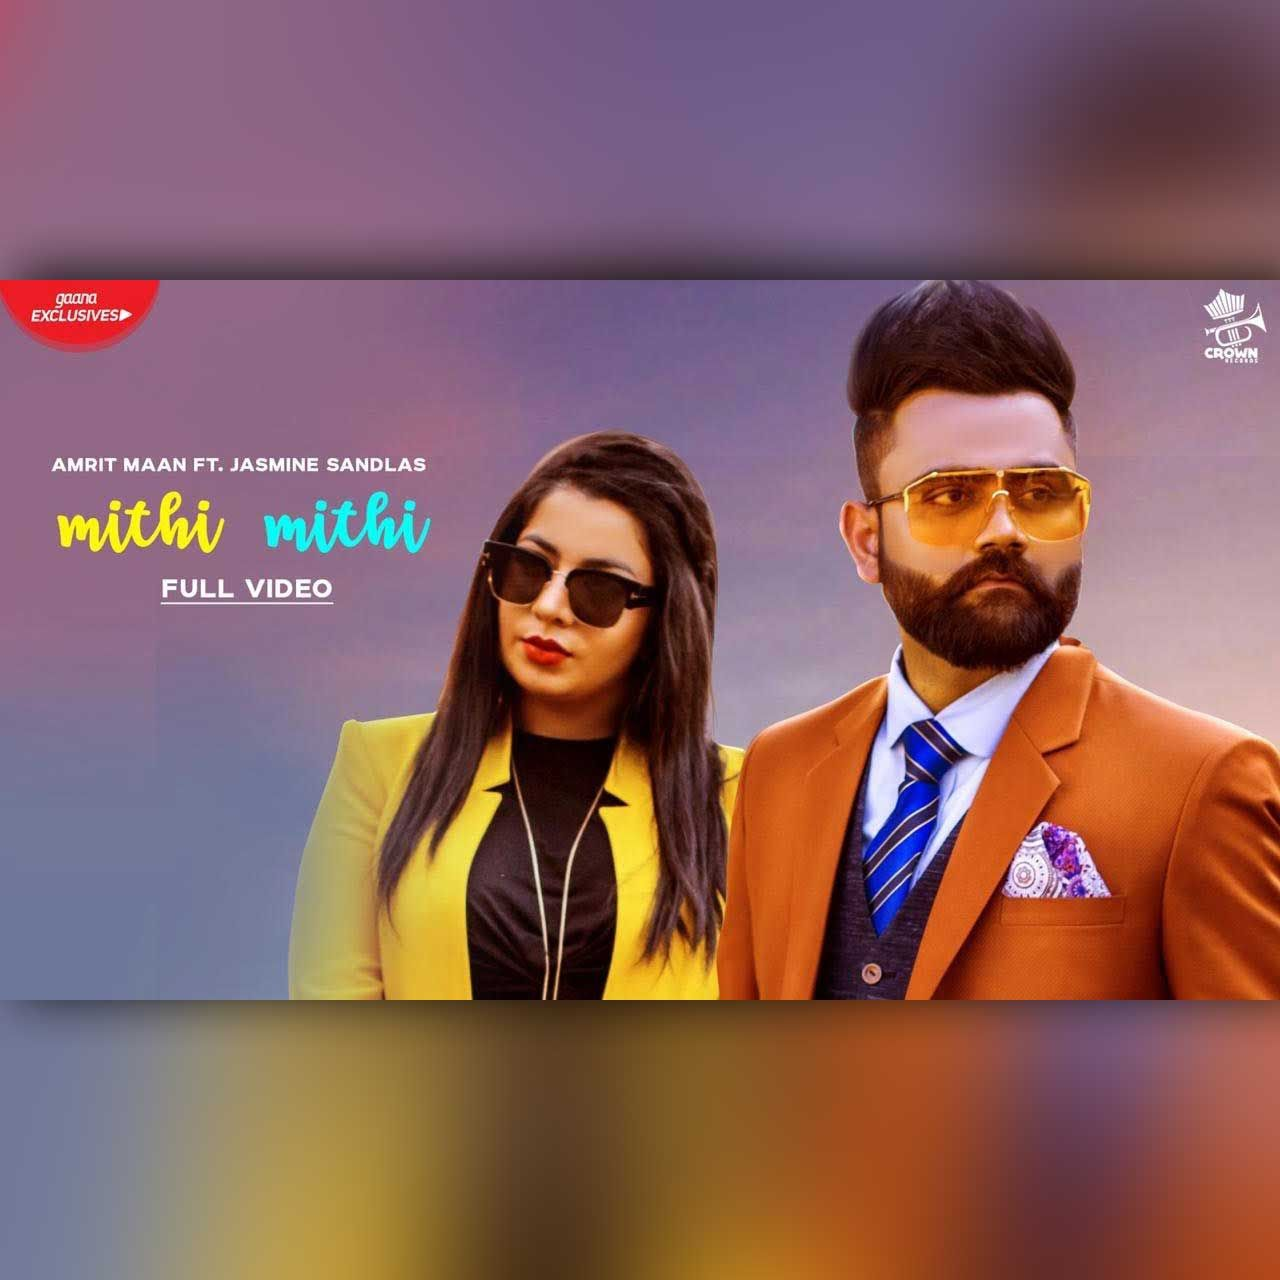 Mithi Mithi By Amrit Maan Jasmine Sandlas Mp3 Punjabi Song Download And Listen Mp3 Song Songs Mp3 Song Download